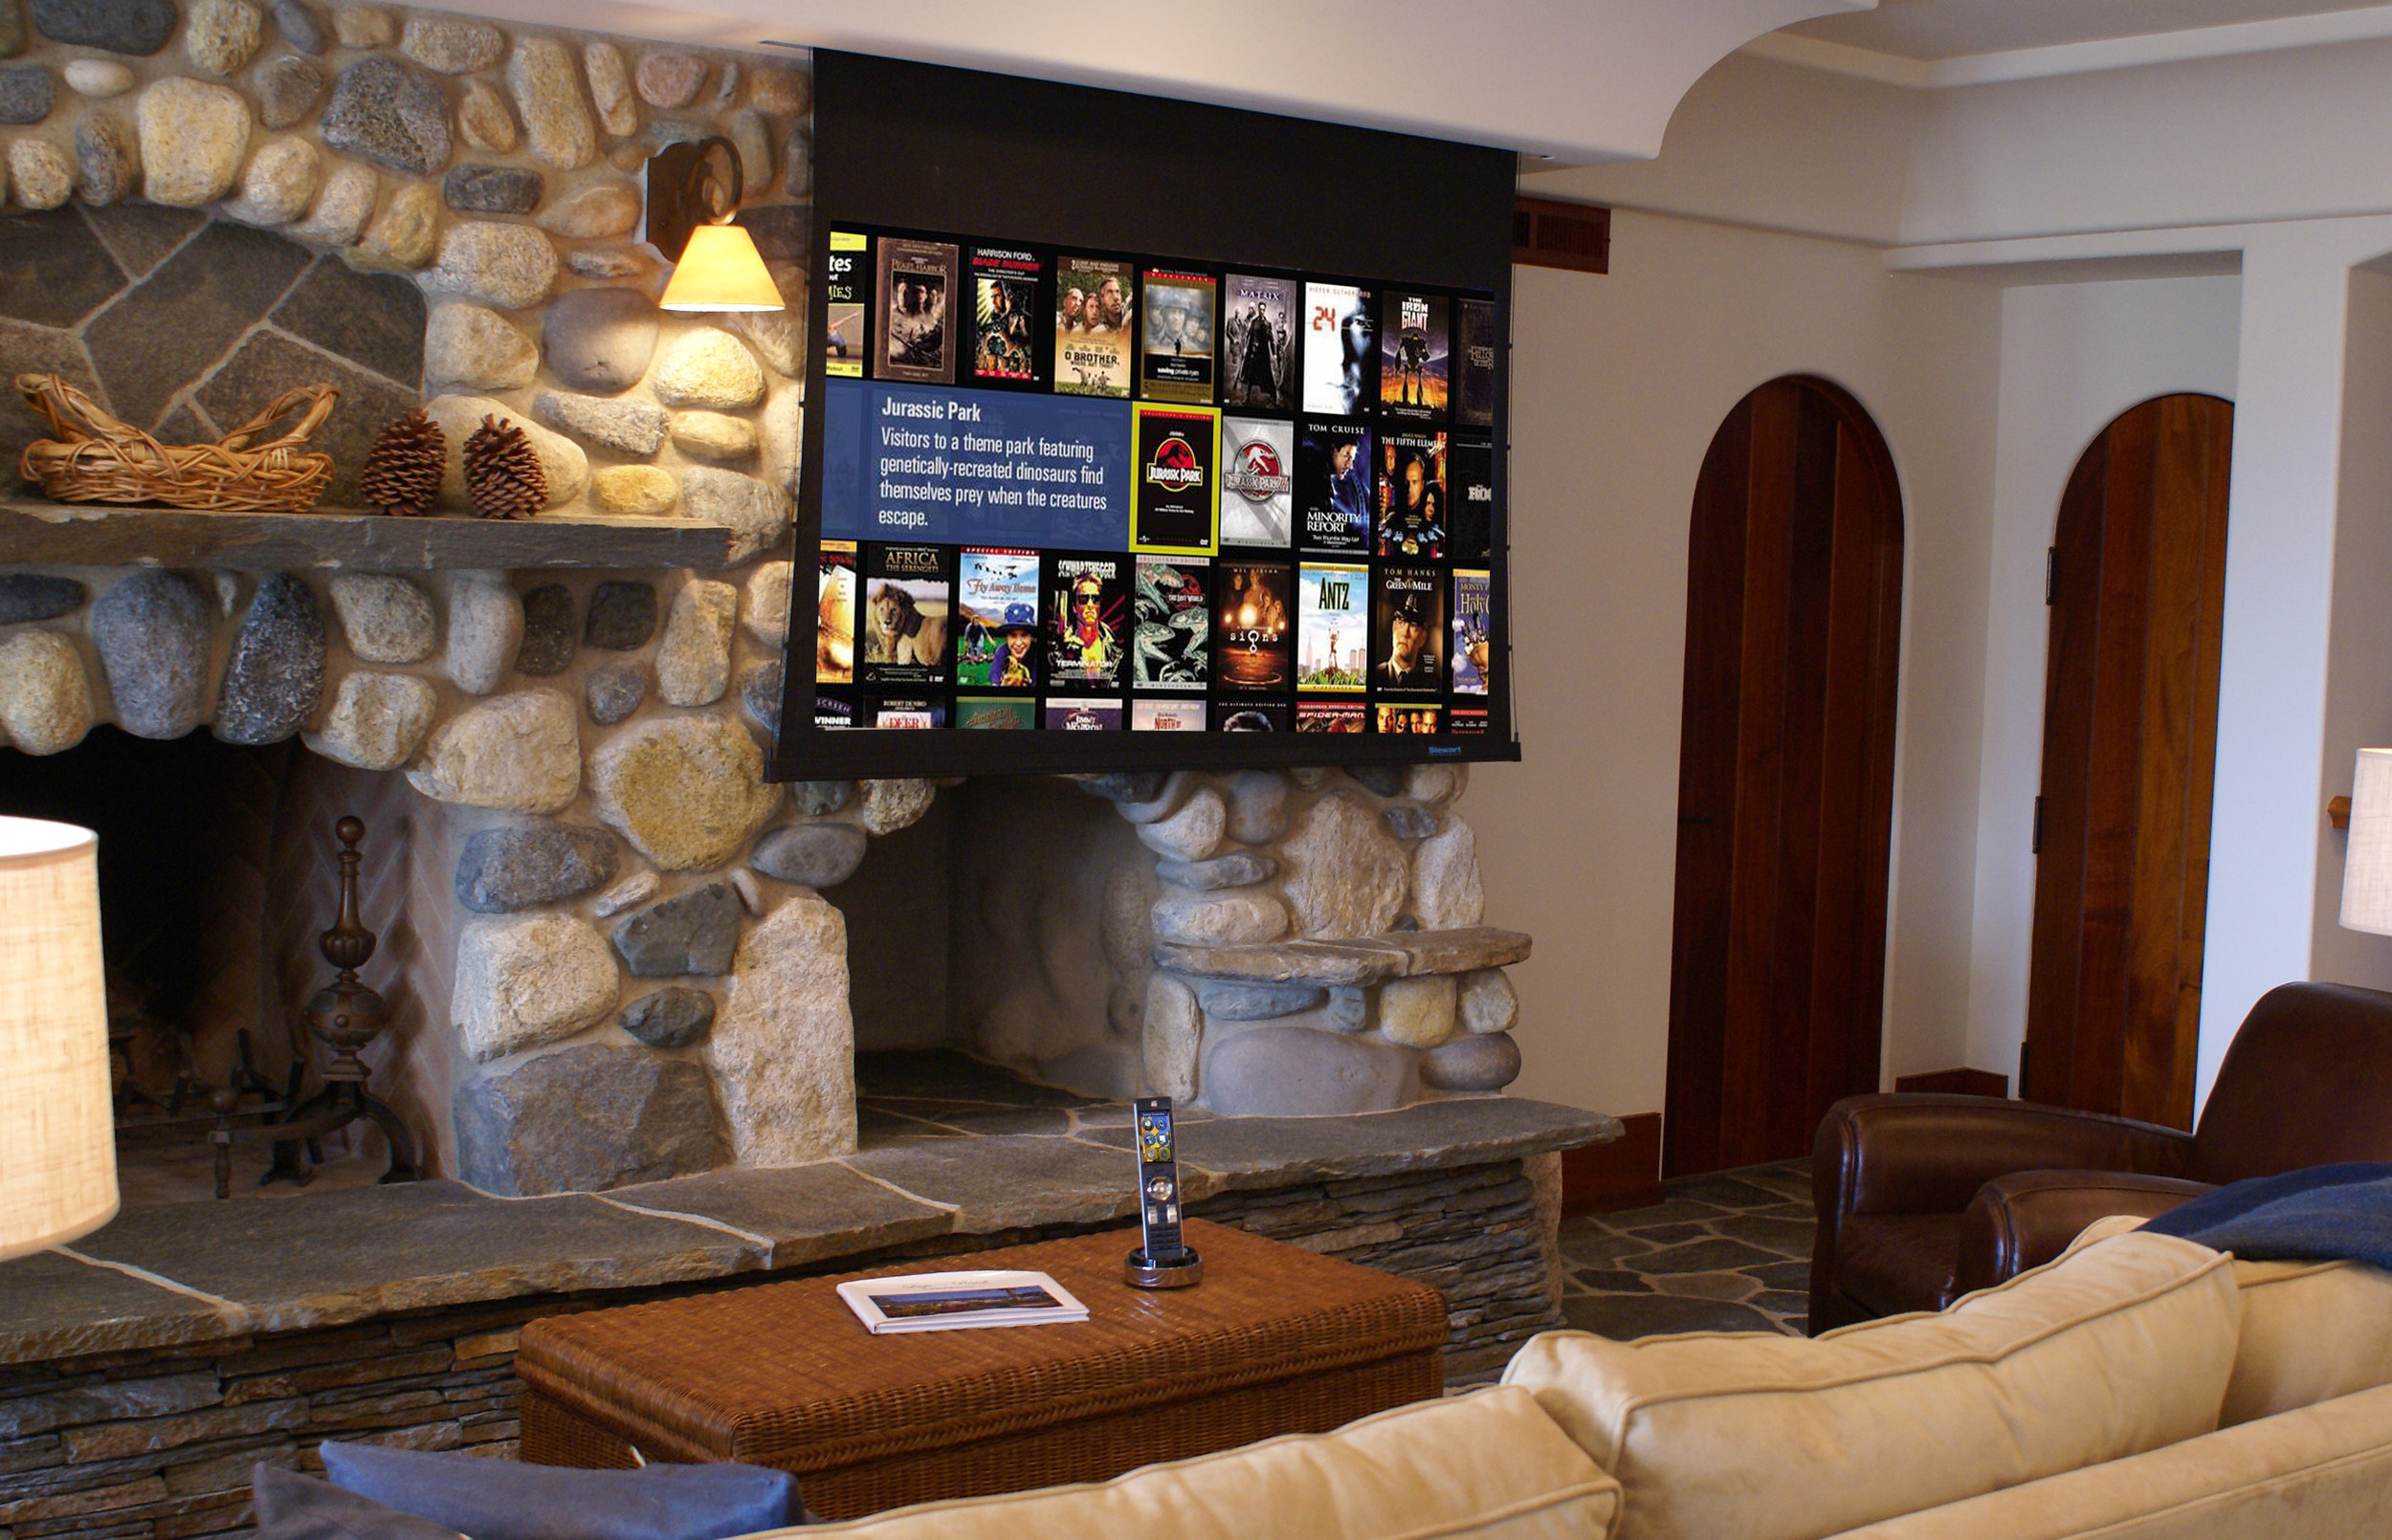 One of two media rooms on property, this motorized Stewart screen system disappears when not in use.